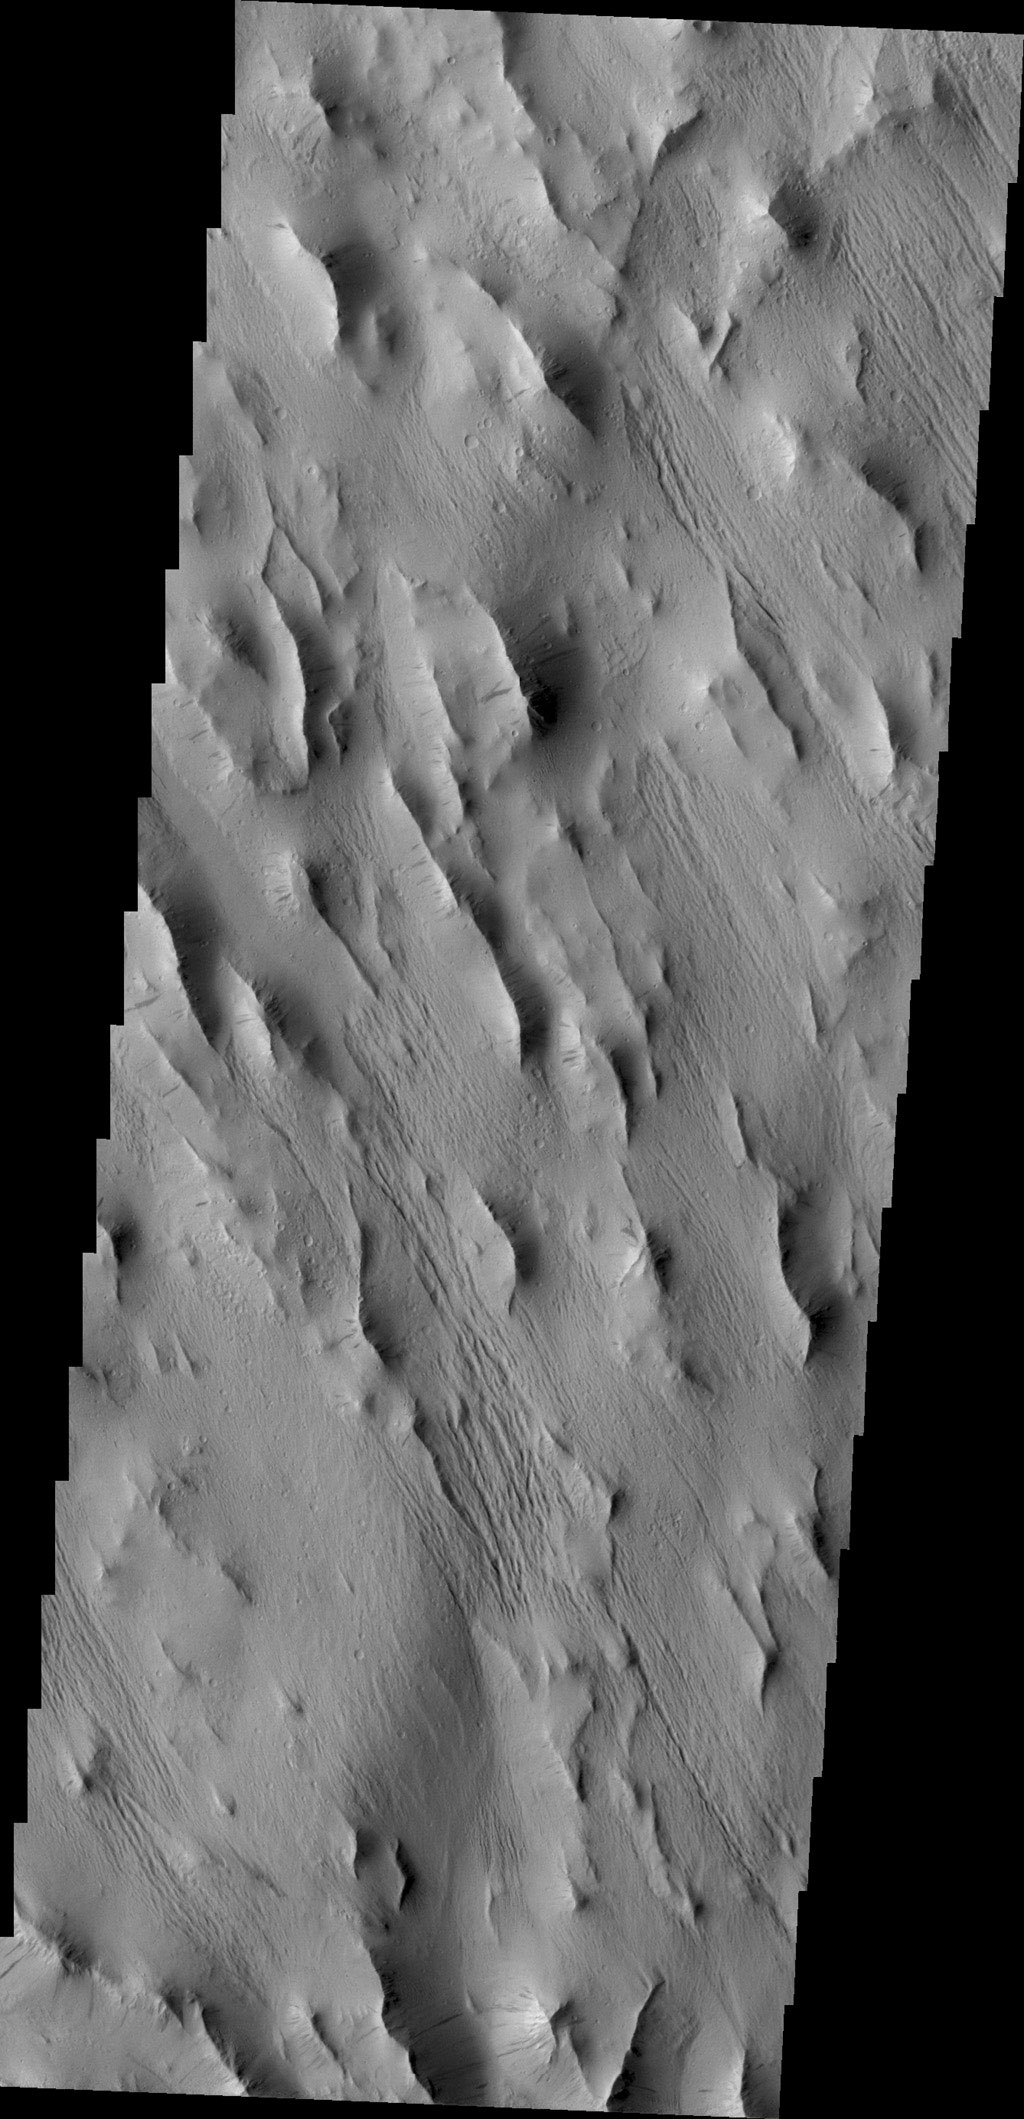 A complexly fractured region, called Lycus Sulci, is found on the western side of Olympus Mons. This image captured by NASA's 2001 Mars Odyssey spacecraft in located in part of Lycus Sulci.